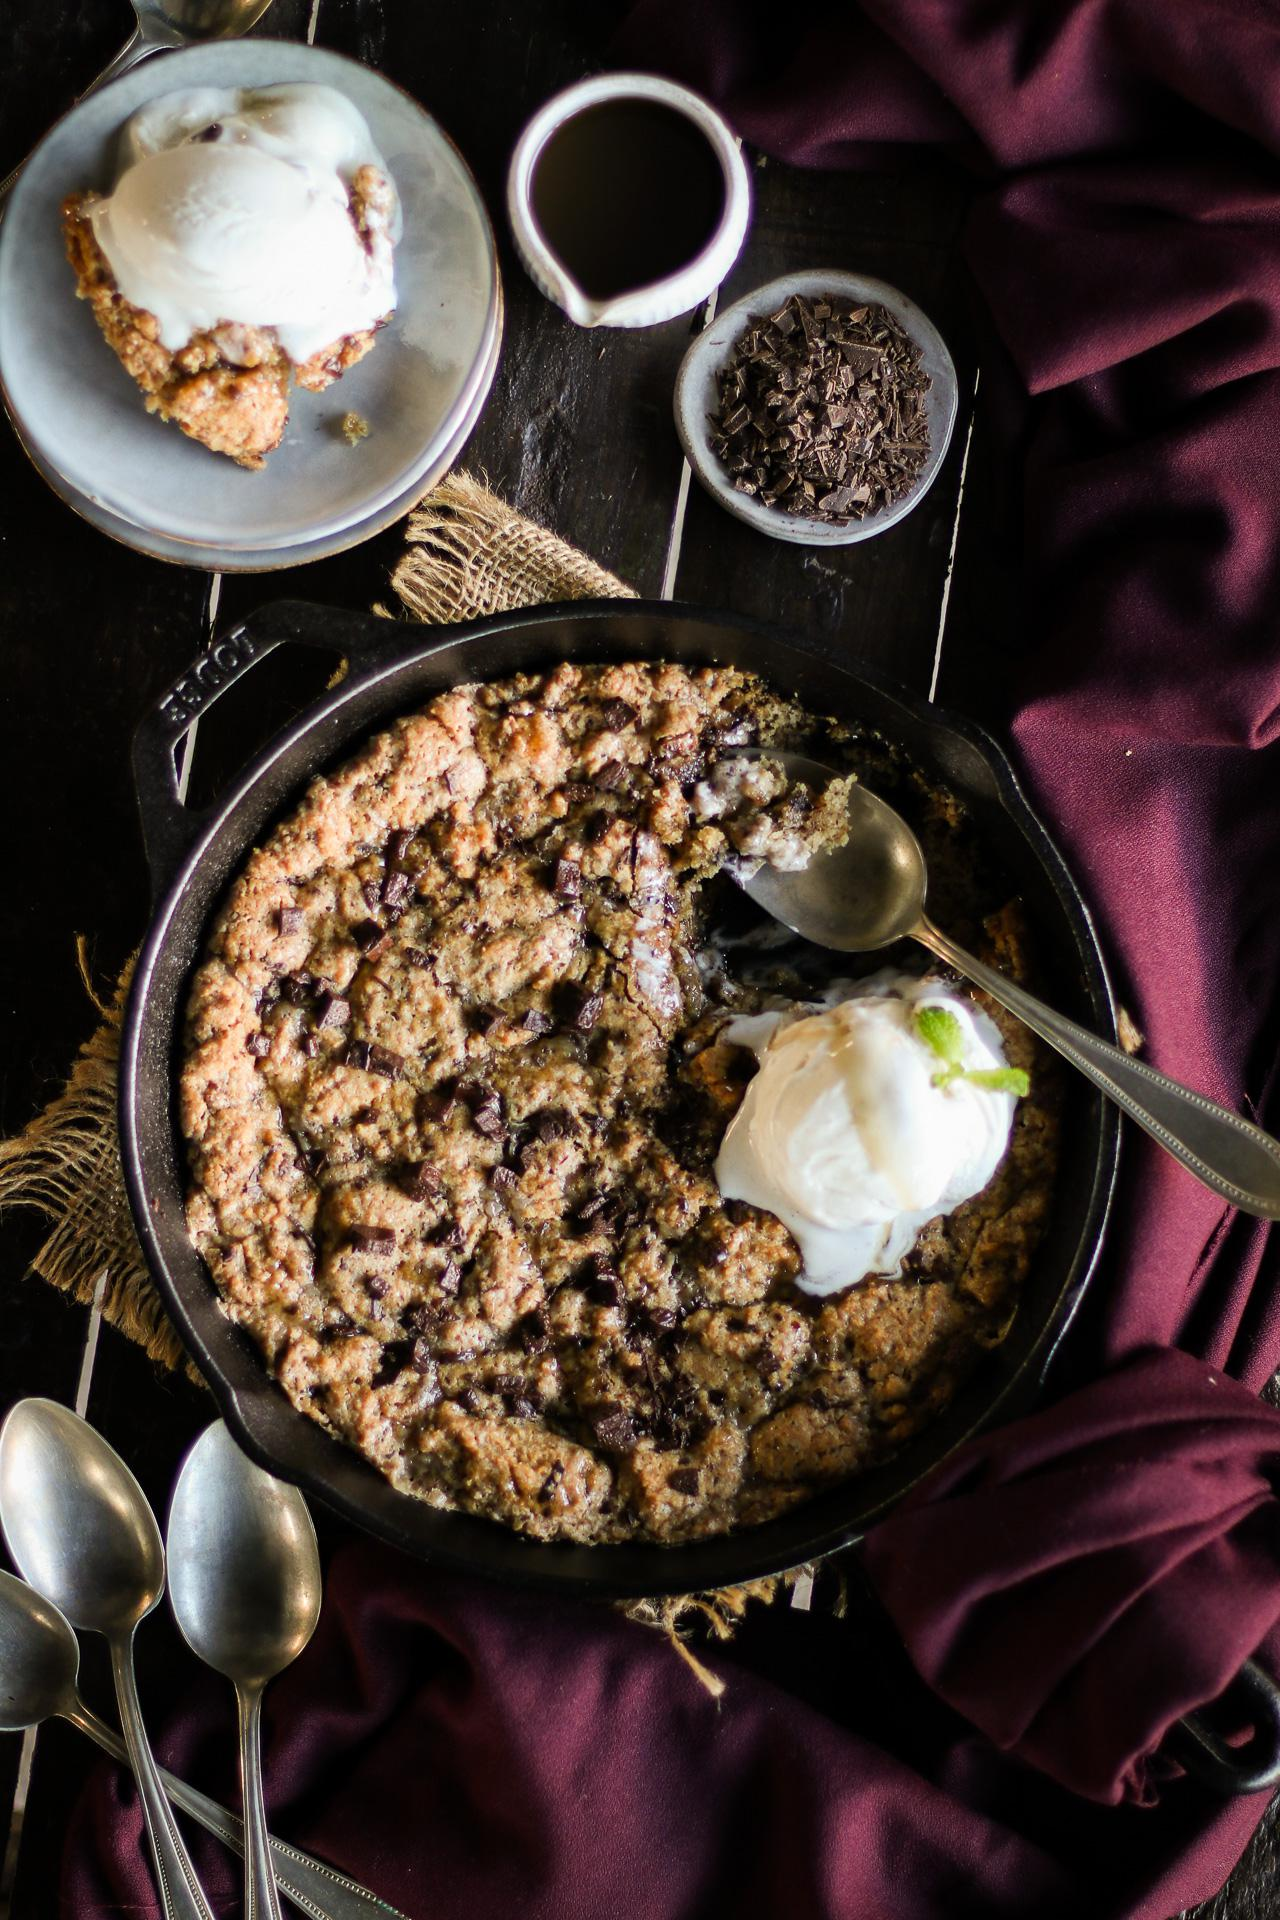 Main image of Chocolate Chip Caramel Skillet Cookie